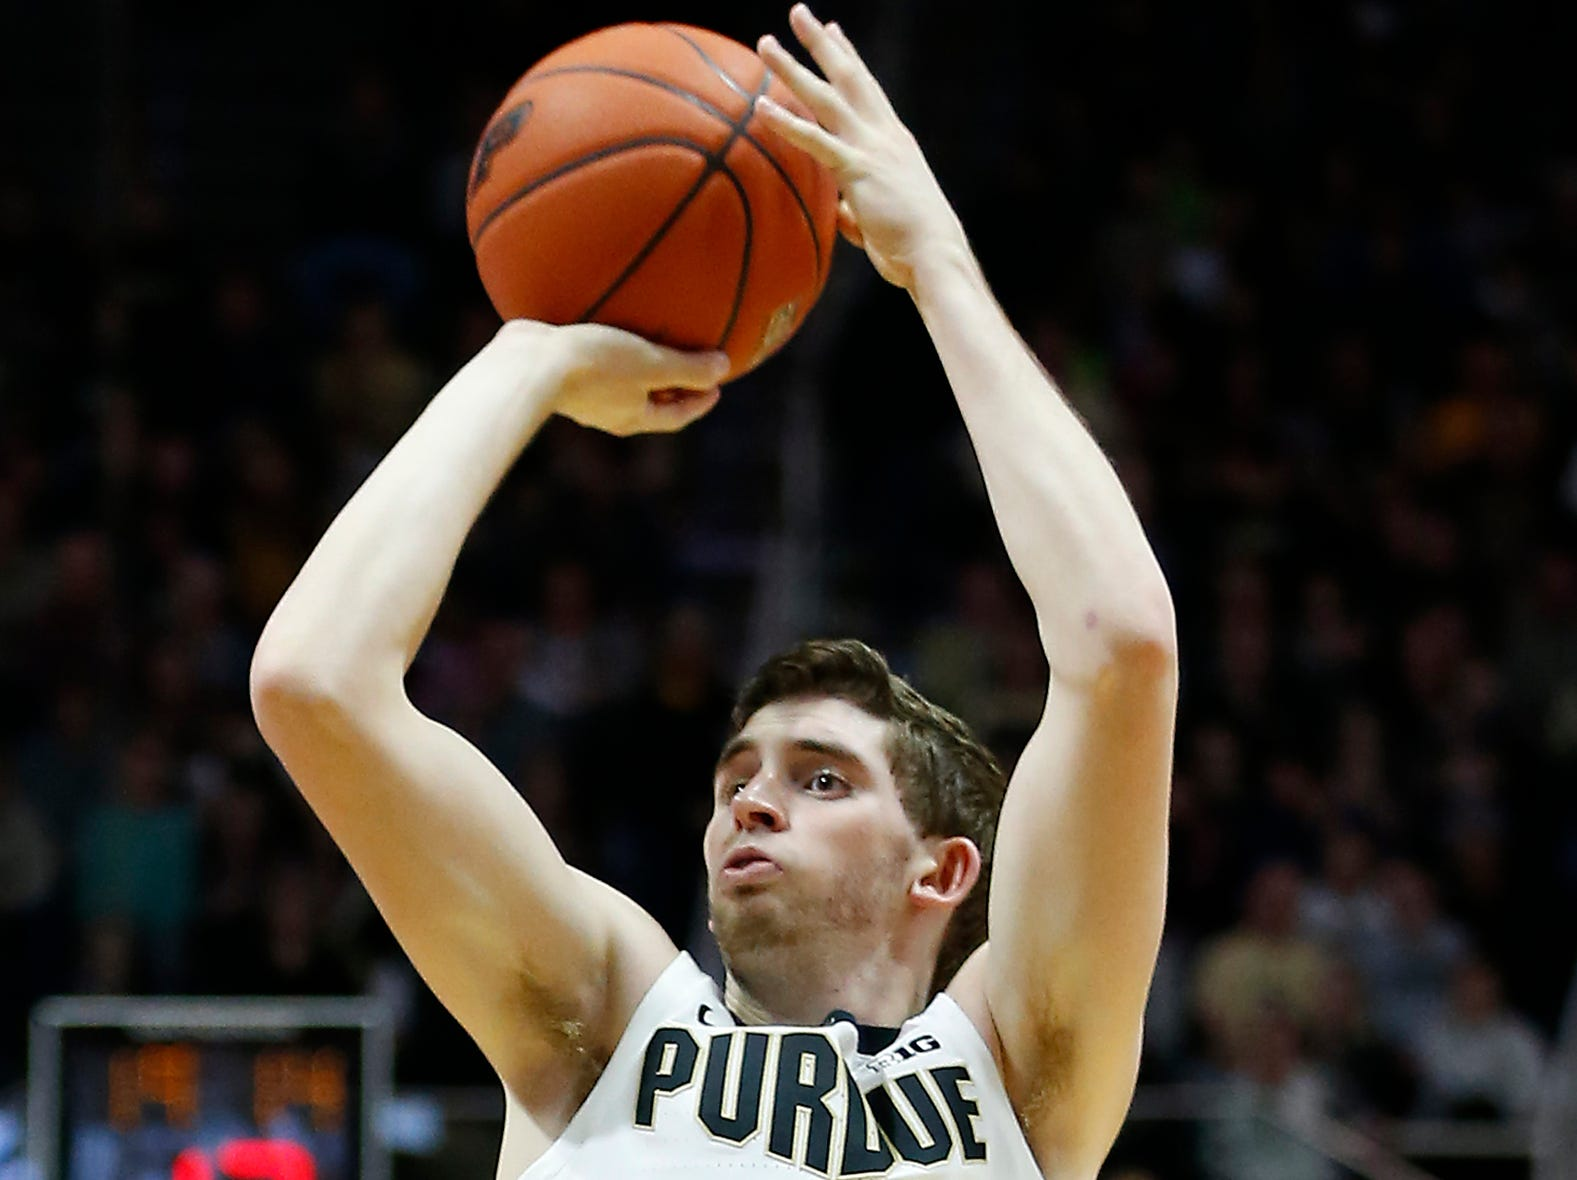 Ryan Cline of Purdue with a three-point shot against Robert Morris Friday, November 23, 2018, at Mackey Arena. Purdue defeated Robert Morris 84-46.